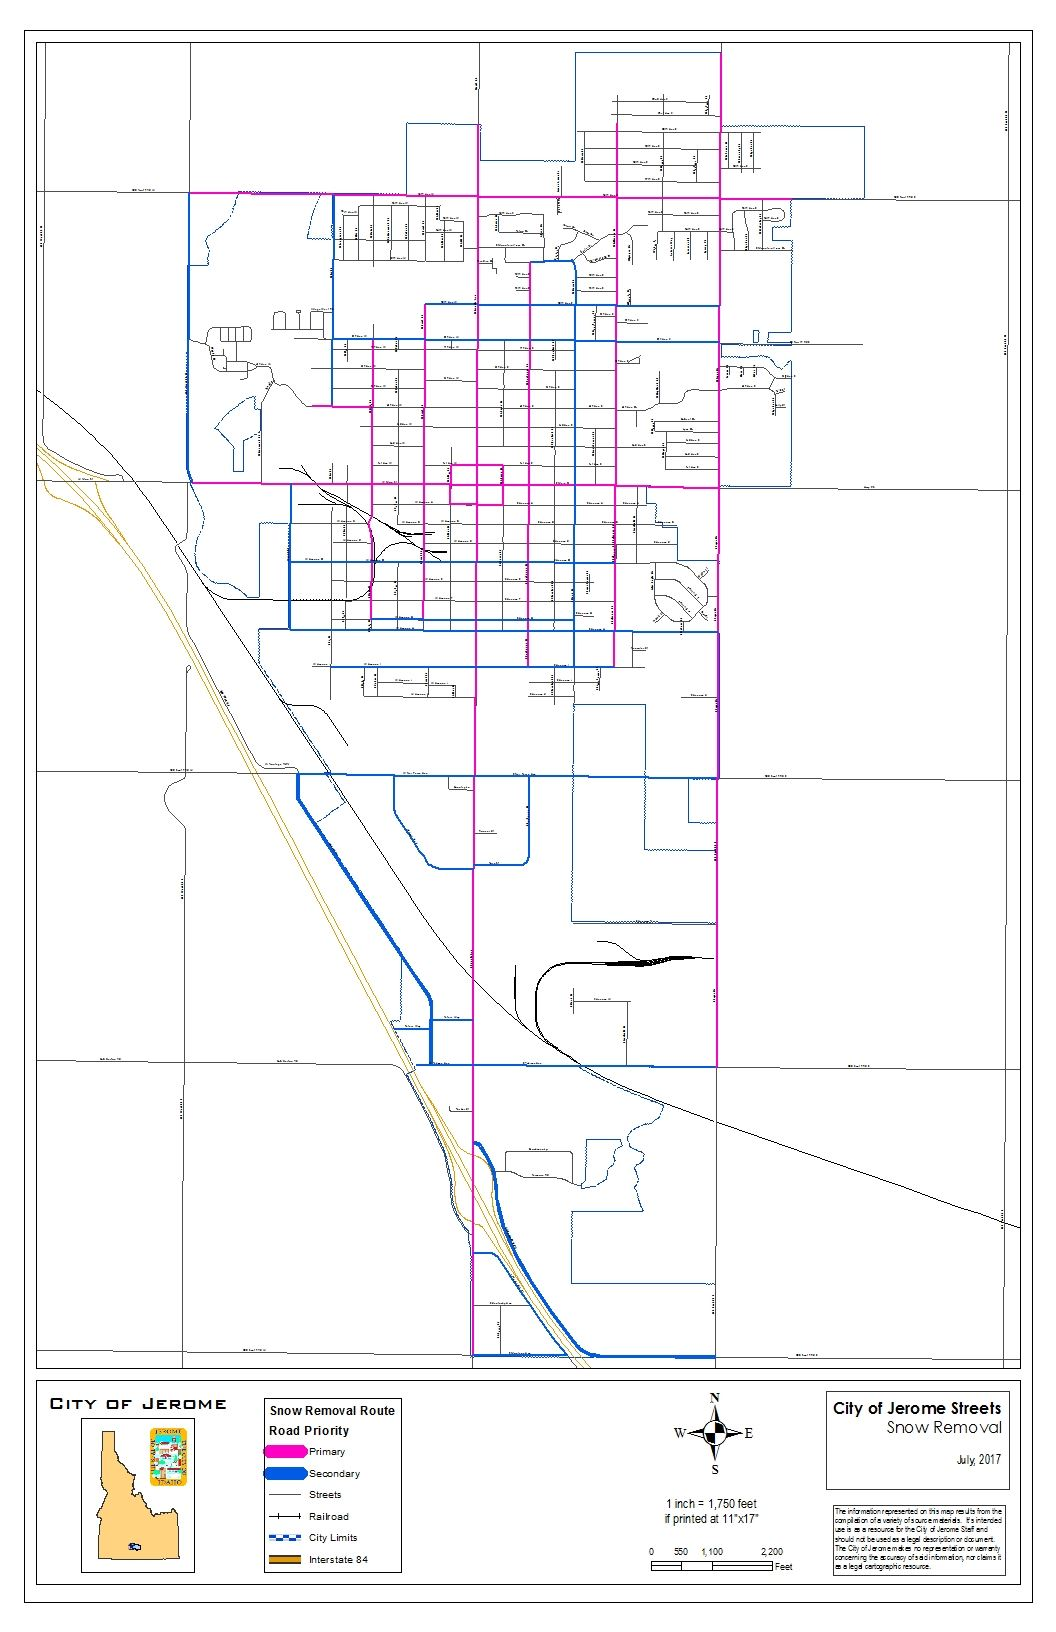 Snow Removal Map (PDF)